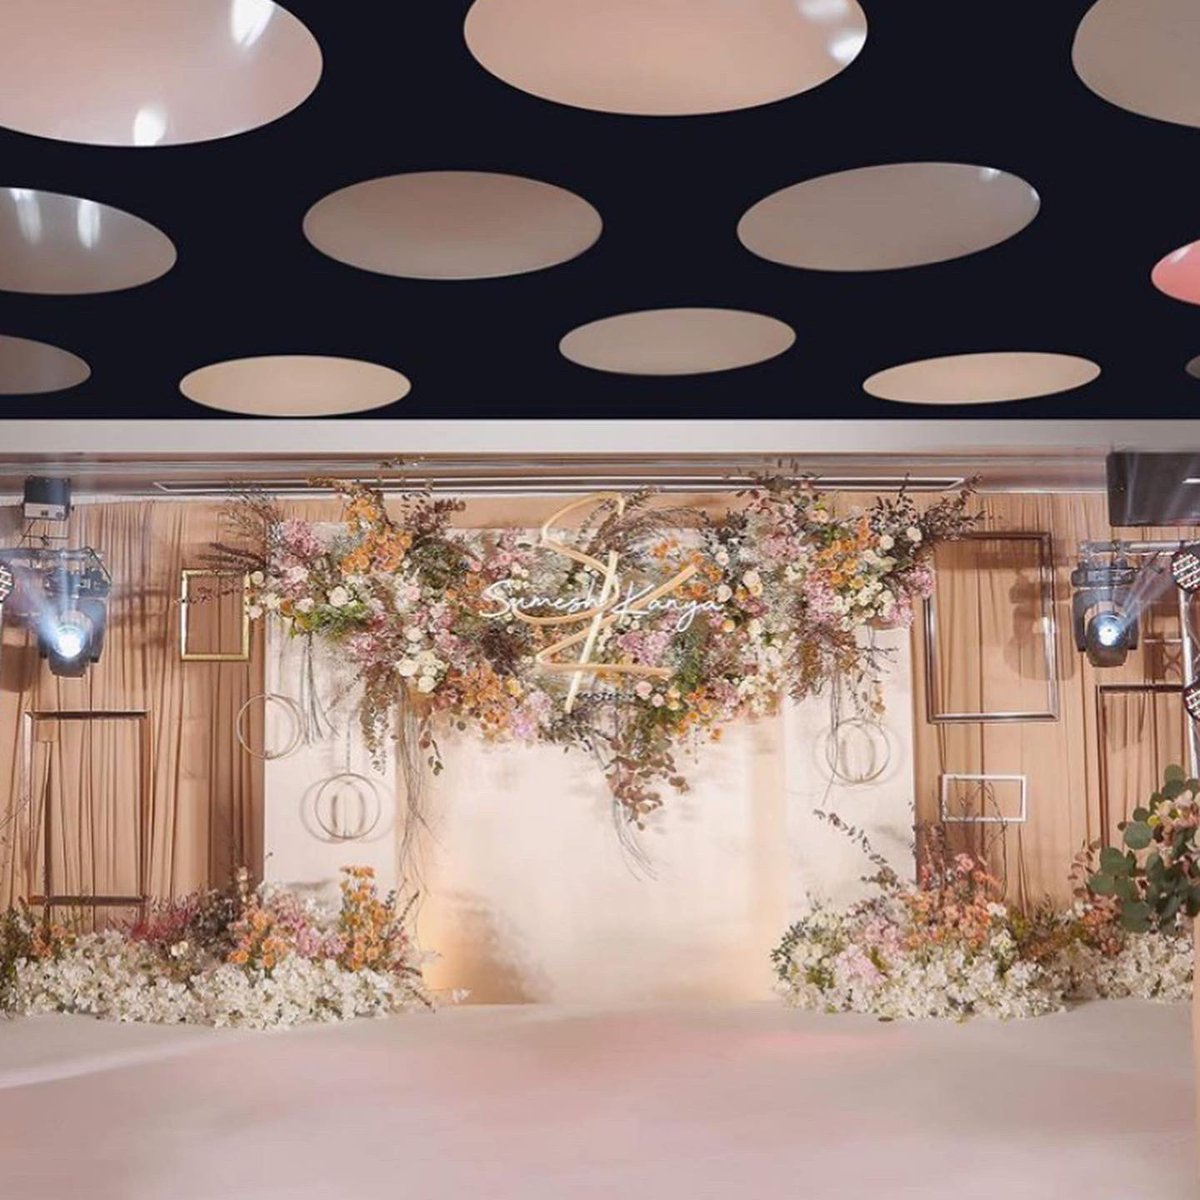 🤵👰🏻Don't miss out our exclusive #wedding offer! Visit us at booth no. 65 at the #SabuyWedding on 14-15 March 2020 https://t.co/KiAwYzRcxX https://t.co/dQw69cbPoW